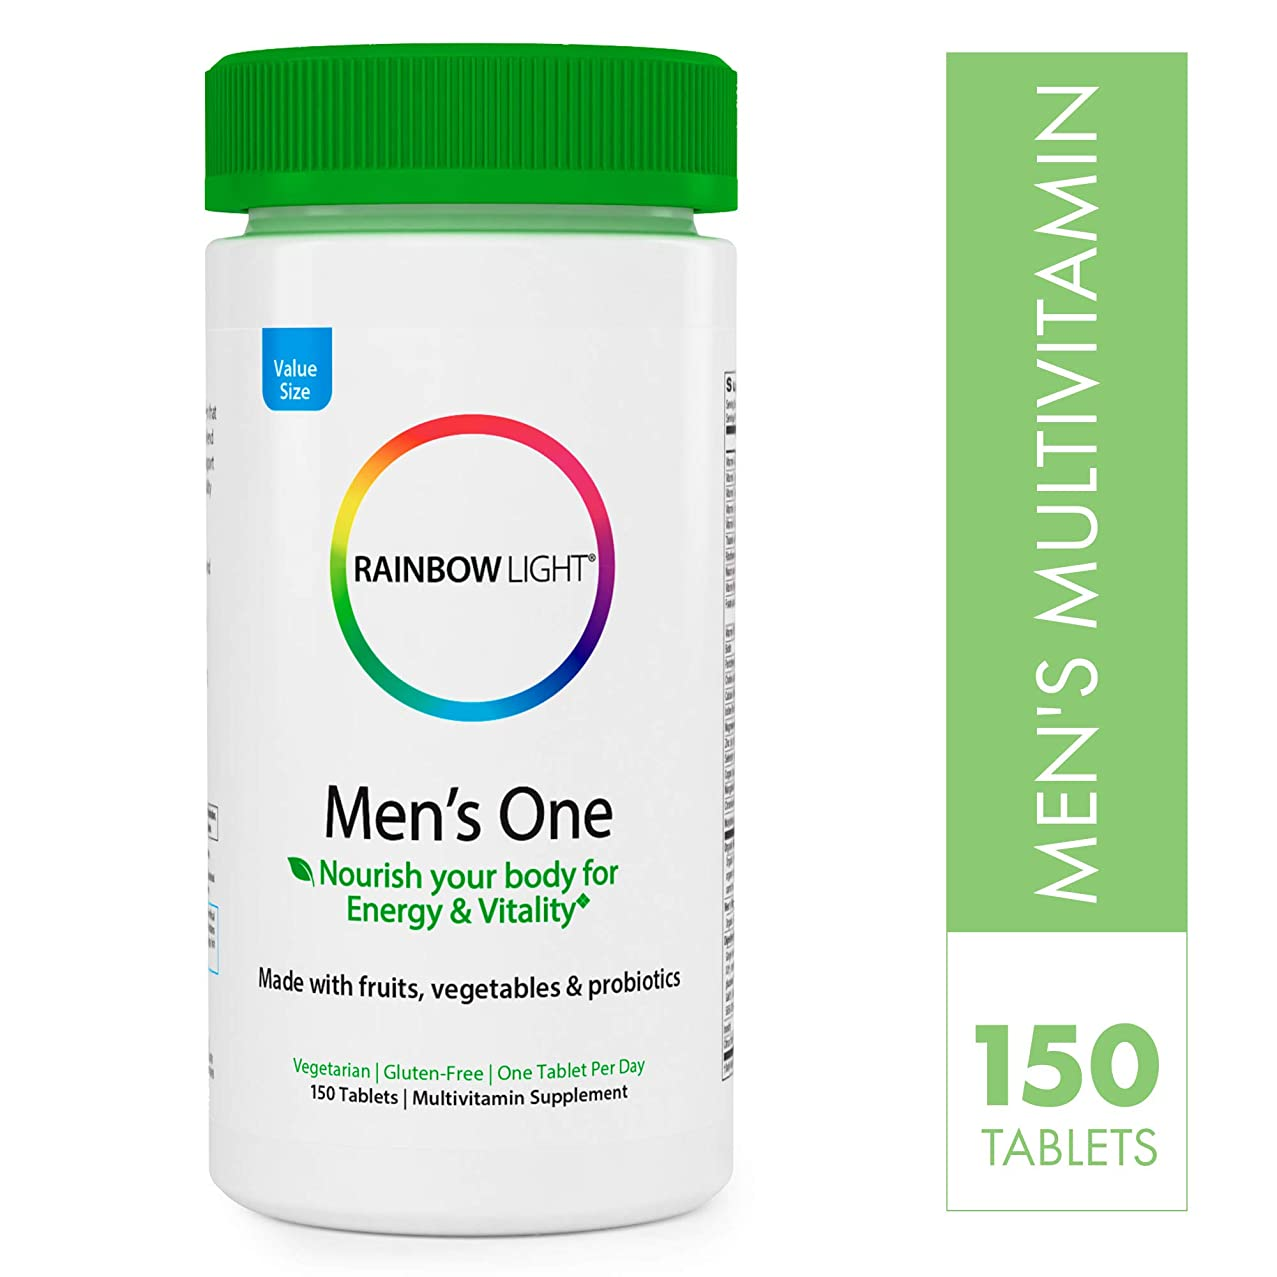 Rainbow Light Men's One Non-GMO Project Verified Multivitamin Plus Superfoods & Probiotics Tablets, 150 Count